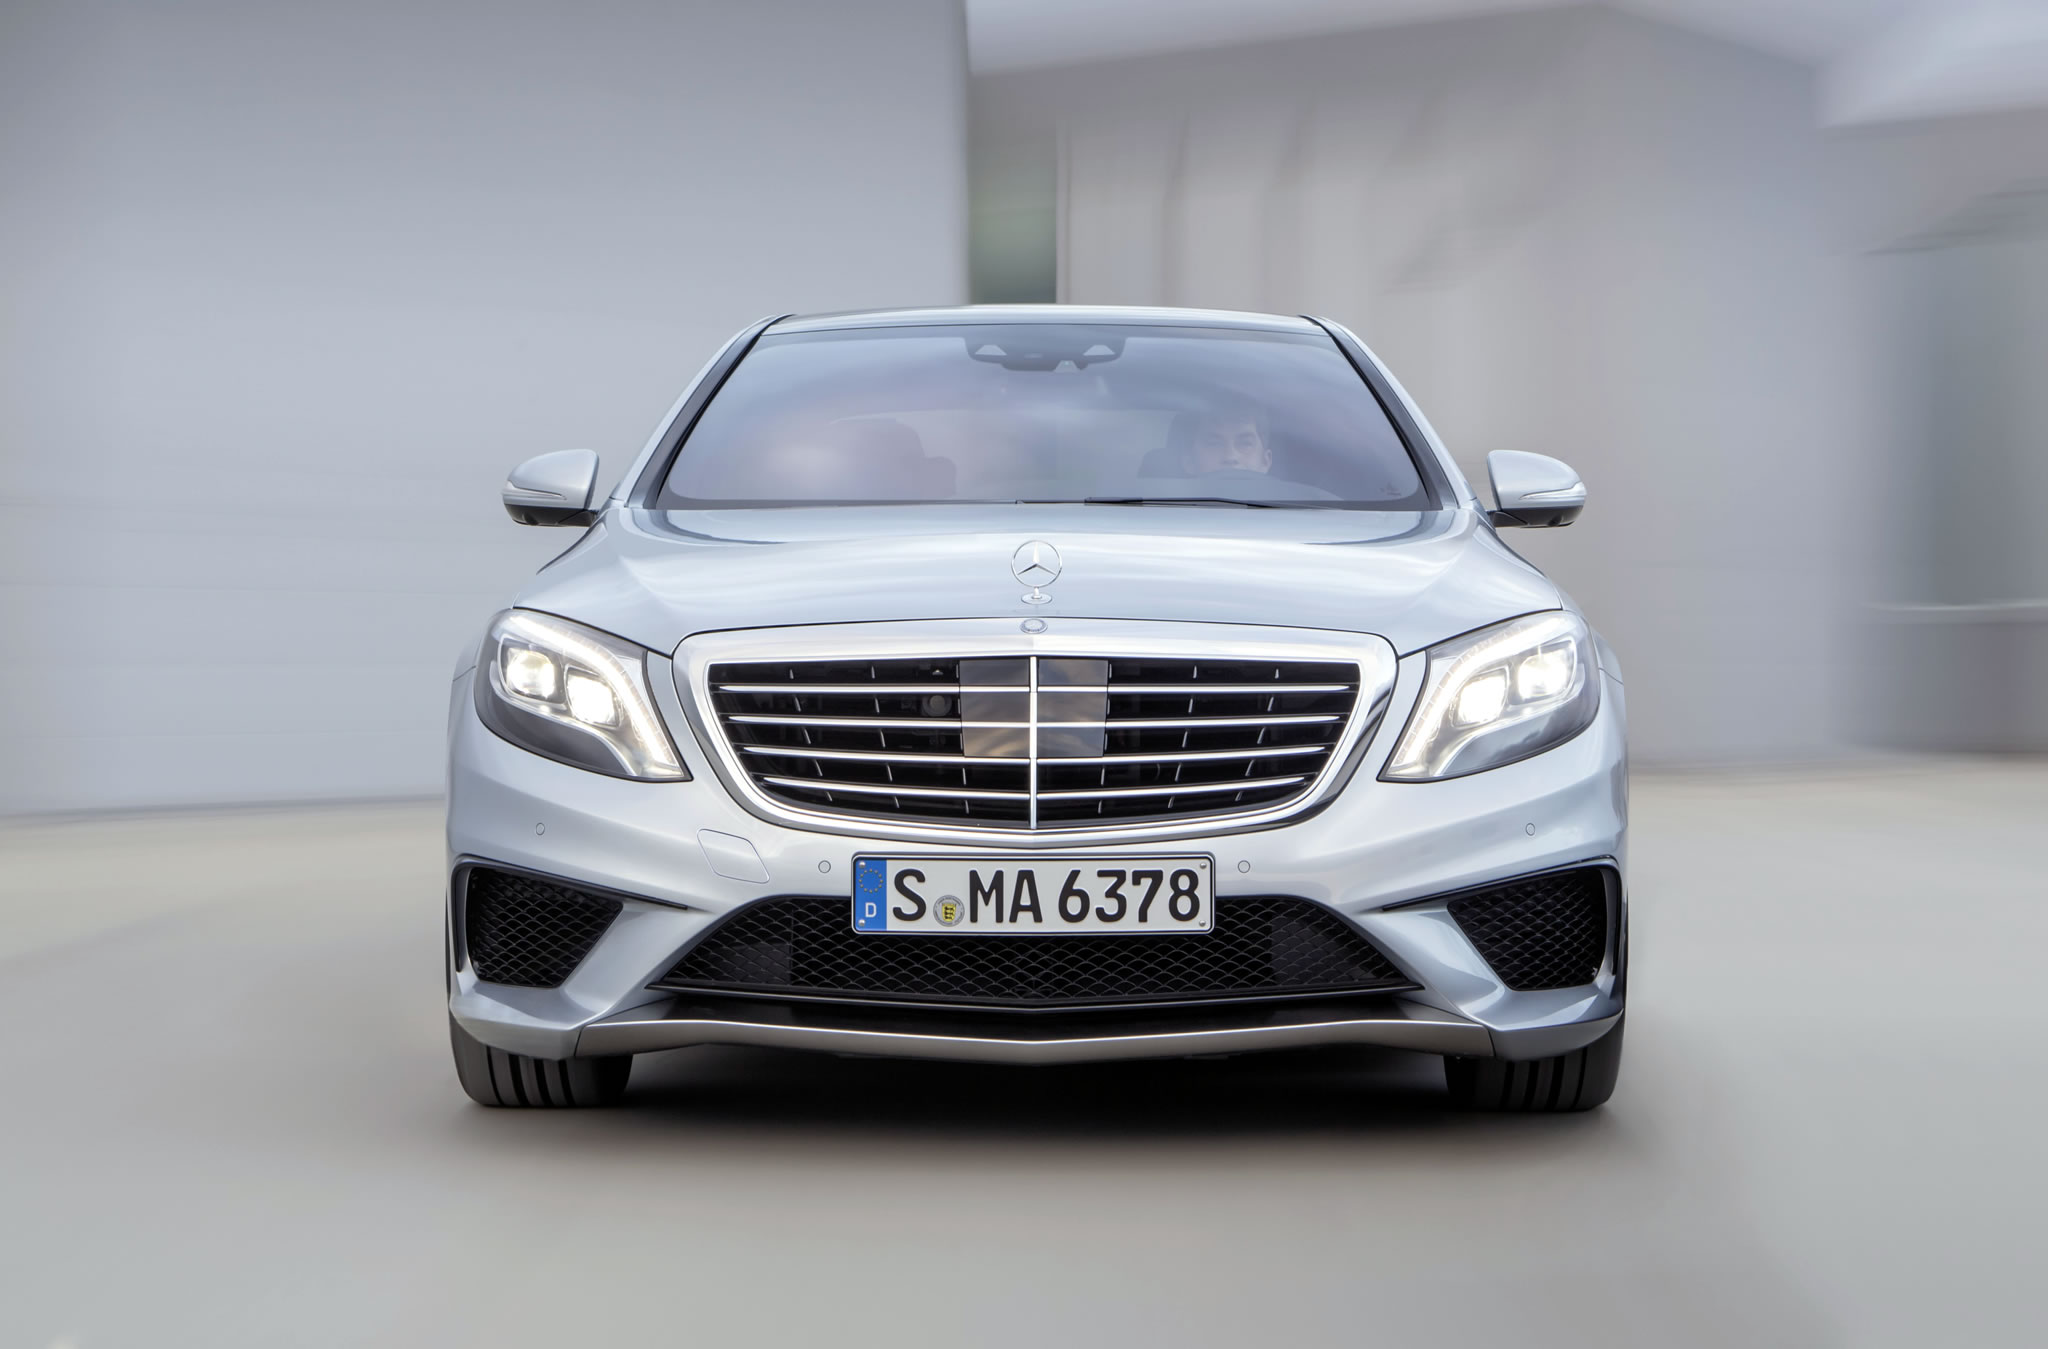 2014 mercedes benz s63 amg 4matic front photo lights for Mercedes benz s63 amg 2014